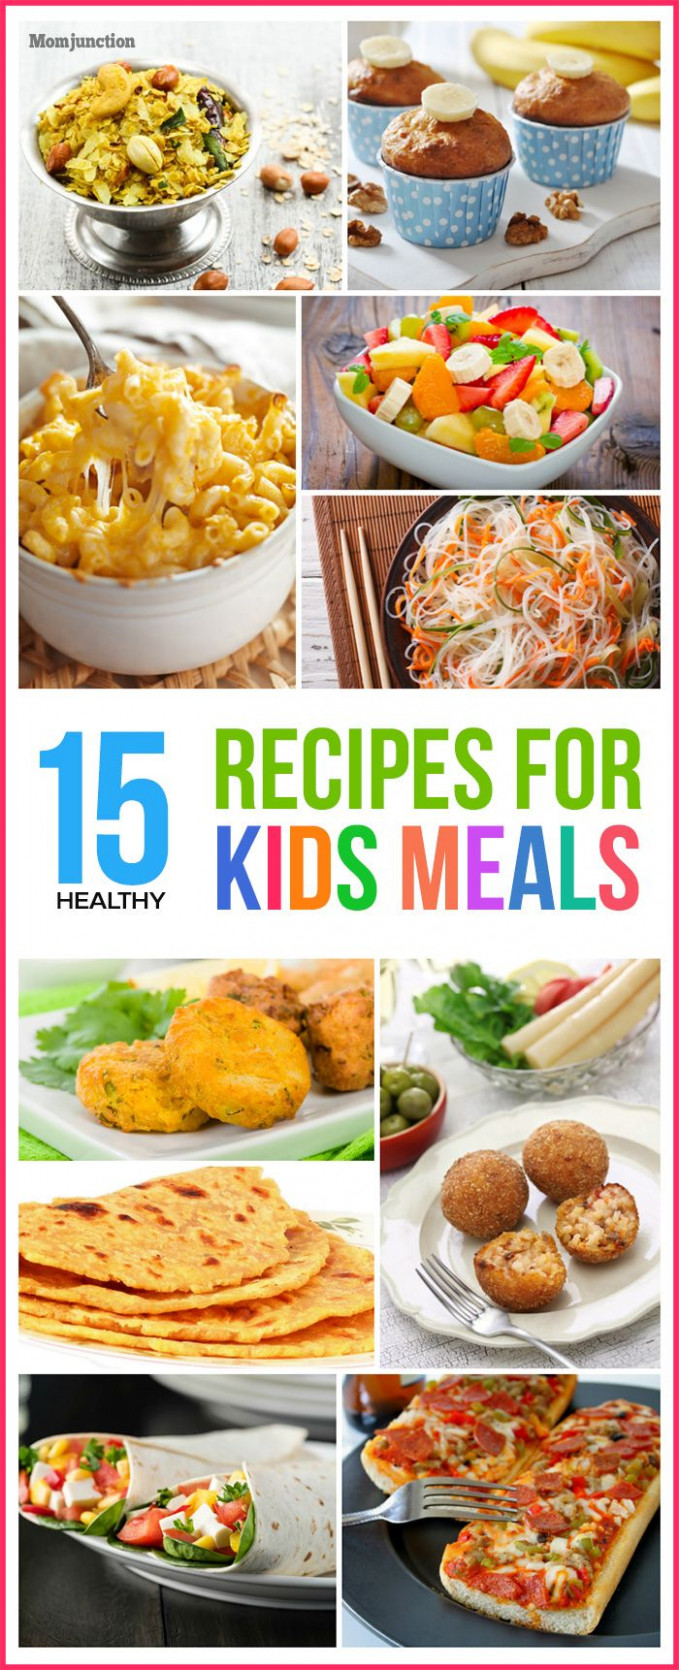 Top 14 Healthy Recipes For Kids' Meals | Favorite Recipes ..